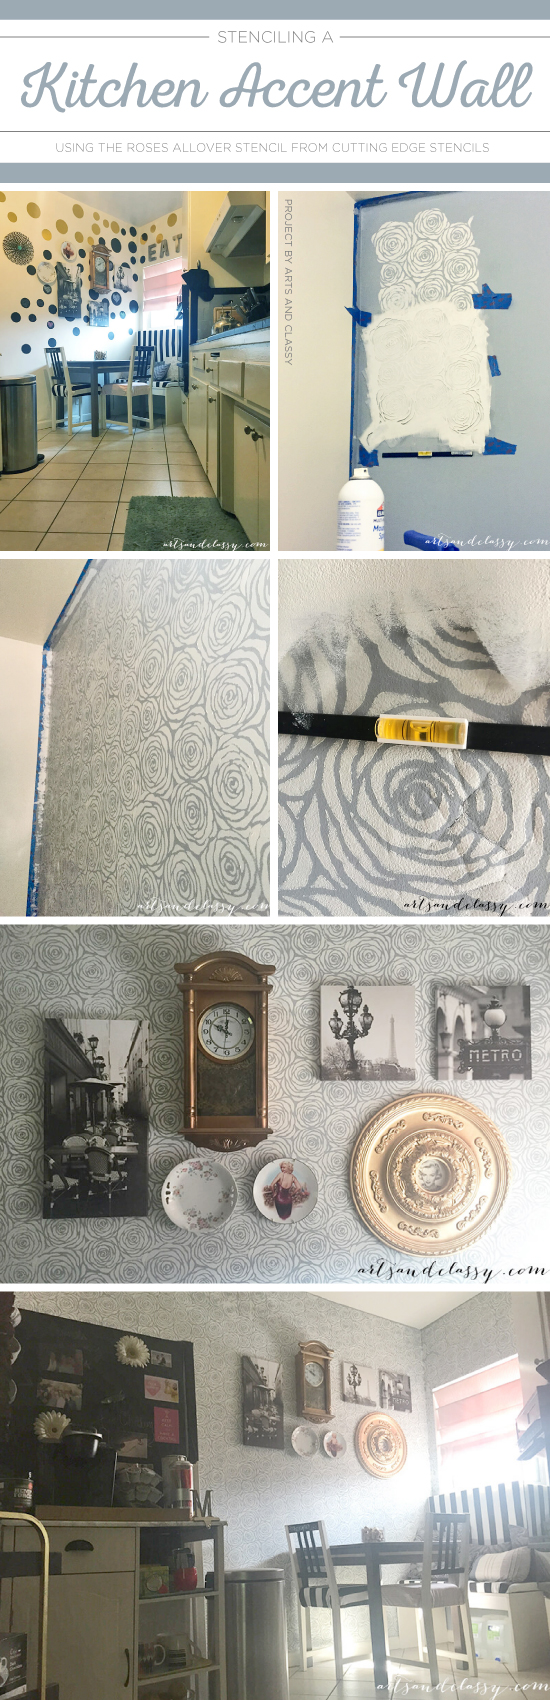 Cutting Edge Stencils shares a DIY kitchen accent wall using the Roses Allover Stencil in gray. http://www.cuttingedgestencils.com/roses-stencil-pattern-rose-design.html